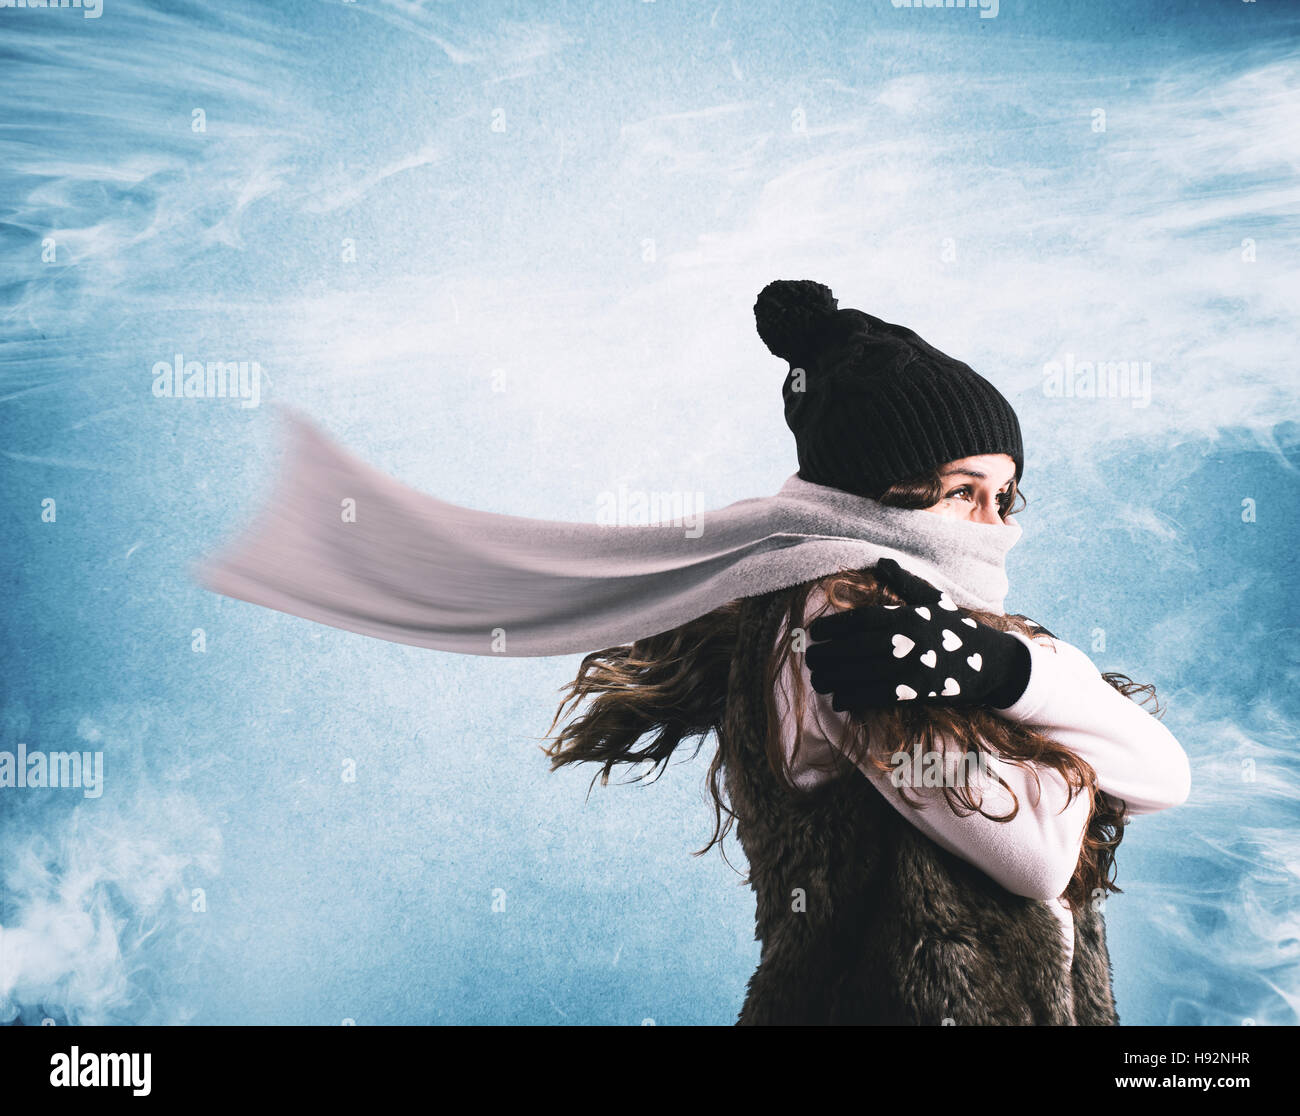 Cold winter - Stock Image